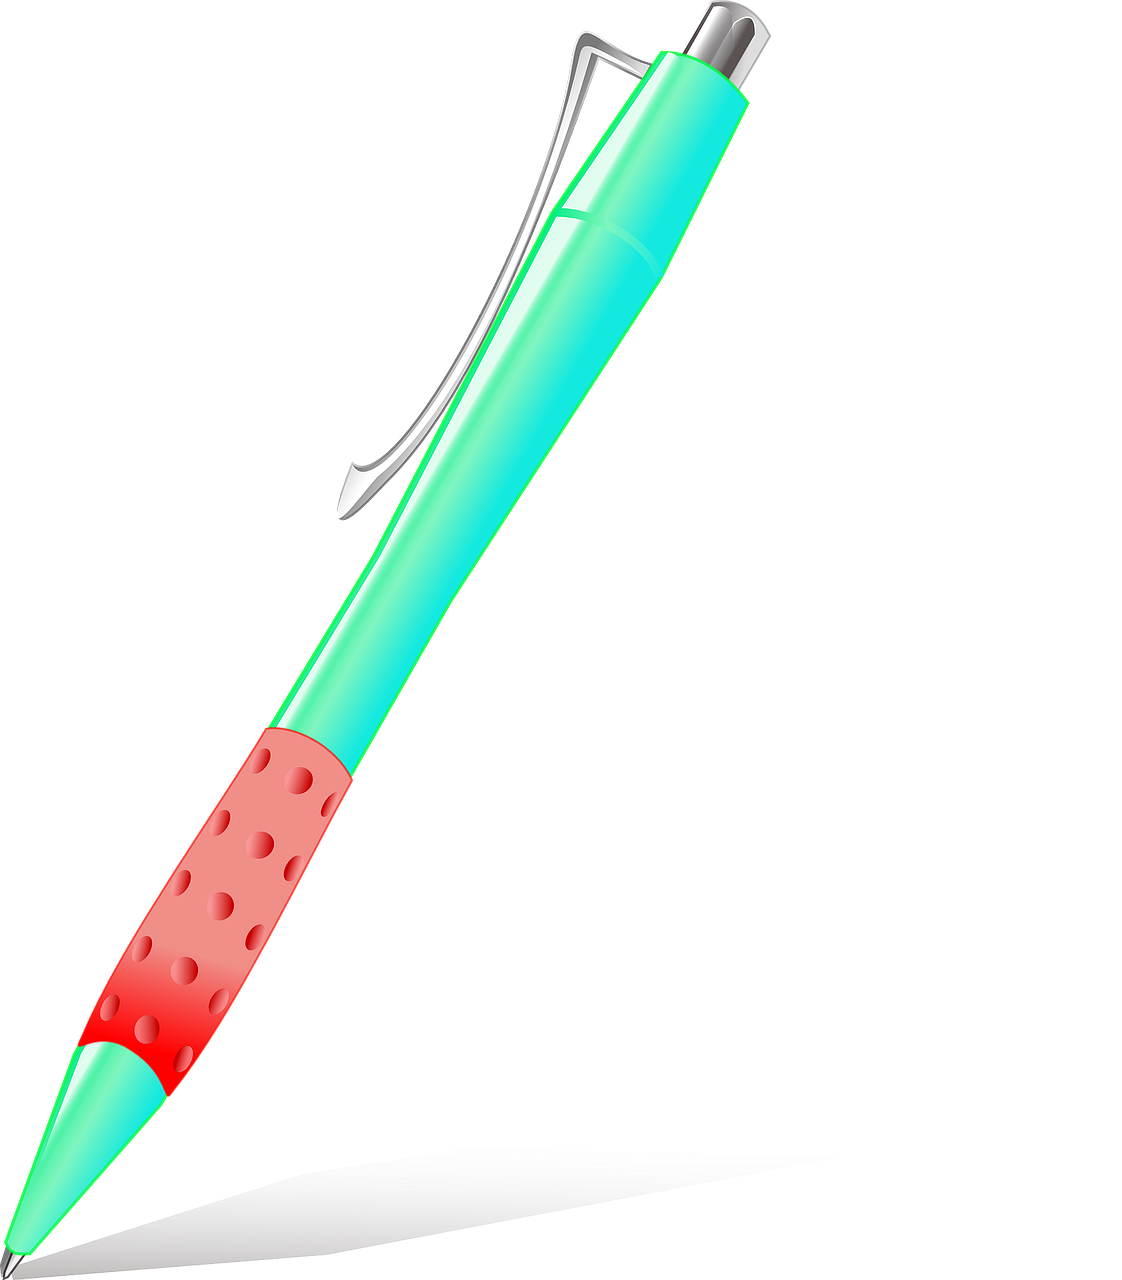 Ballpoint writing instrument png. Pen clipart writer pen